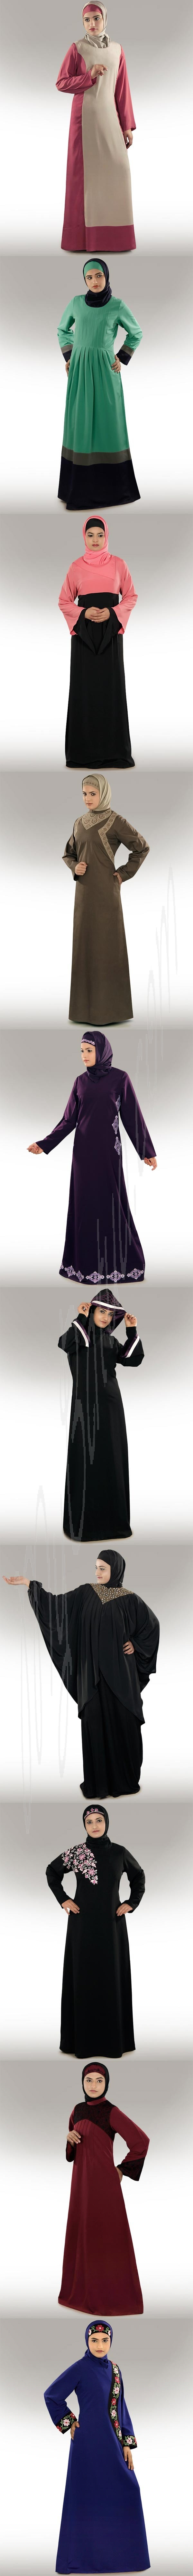 Abayas, Modern, Designer, Traditional Islamic CLothing, Party, Occasion, Formal, Casual Daily Wear in Blue, Black, Red, Purple, Pink, Brown, Cream, Available From Size XS to 7XL, Customize Length.  http://www.mybatua.com/womens/abaya?limit=all